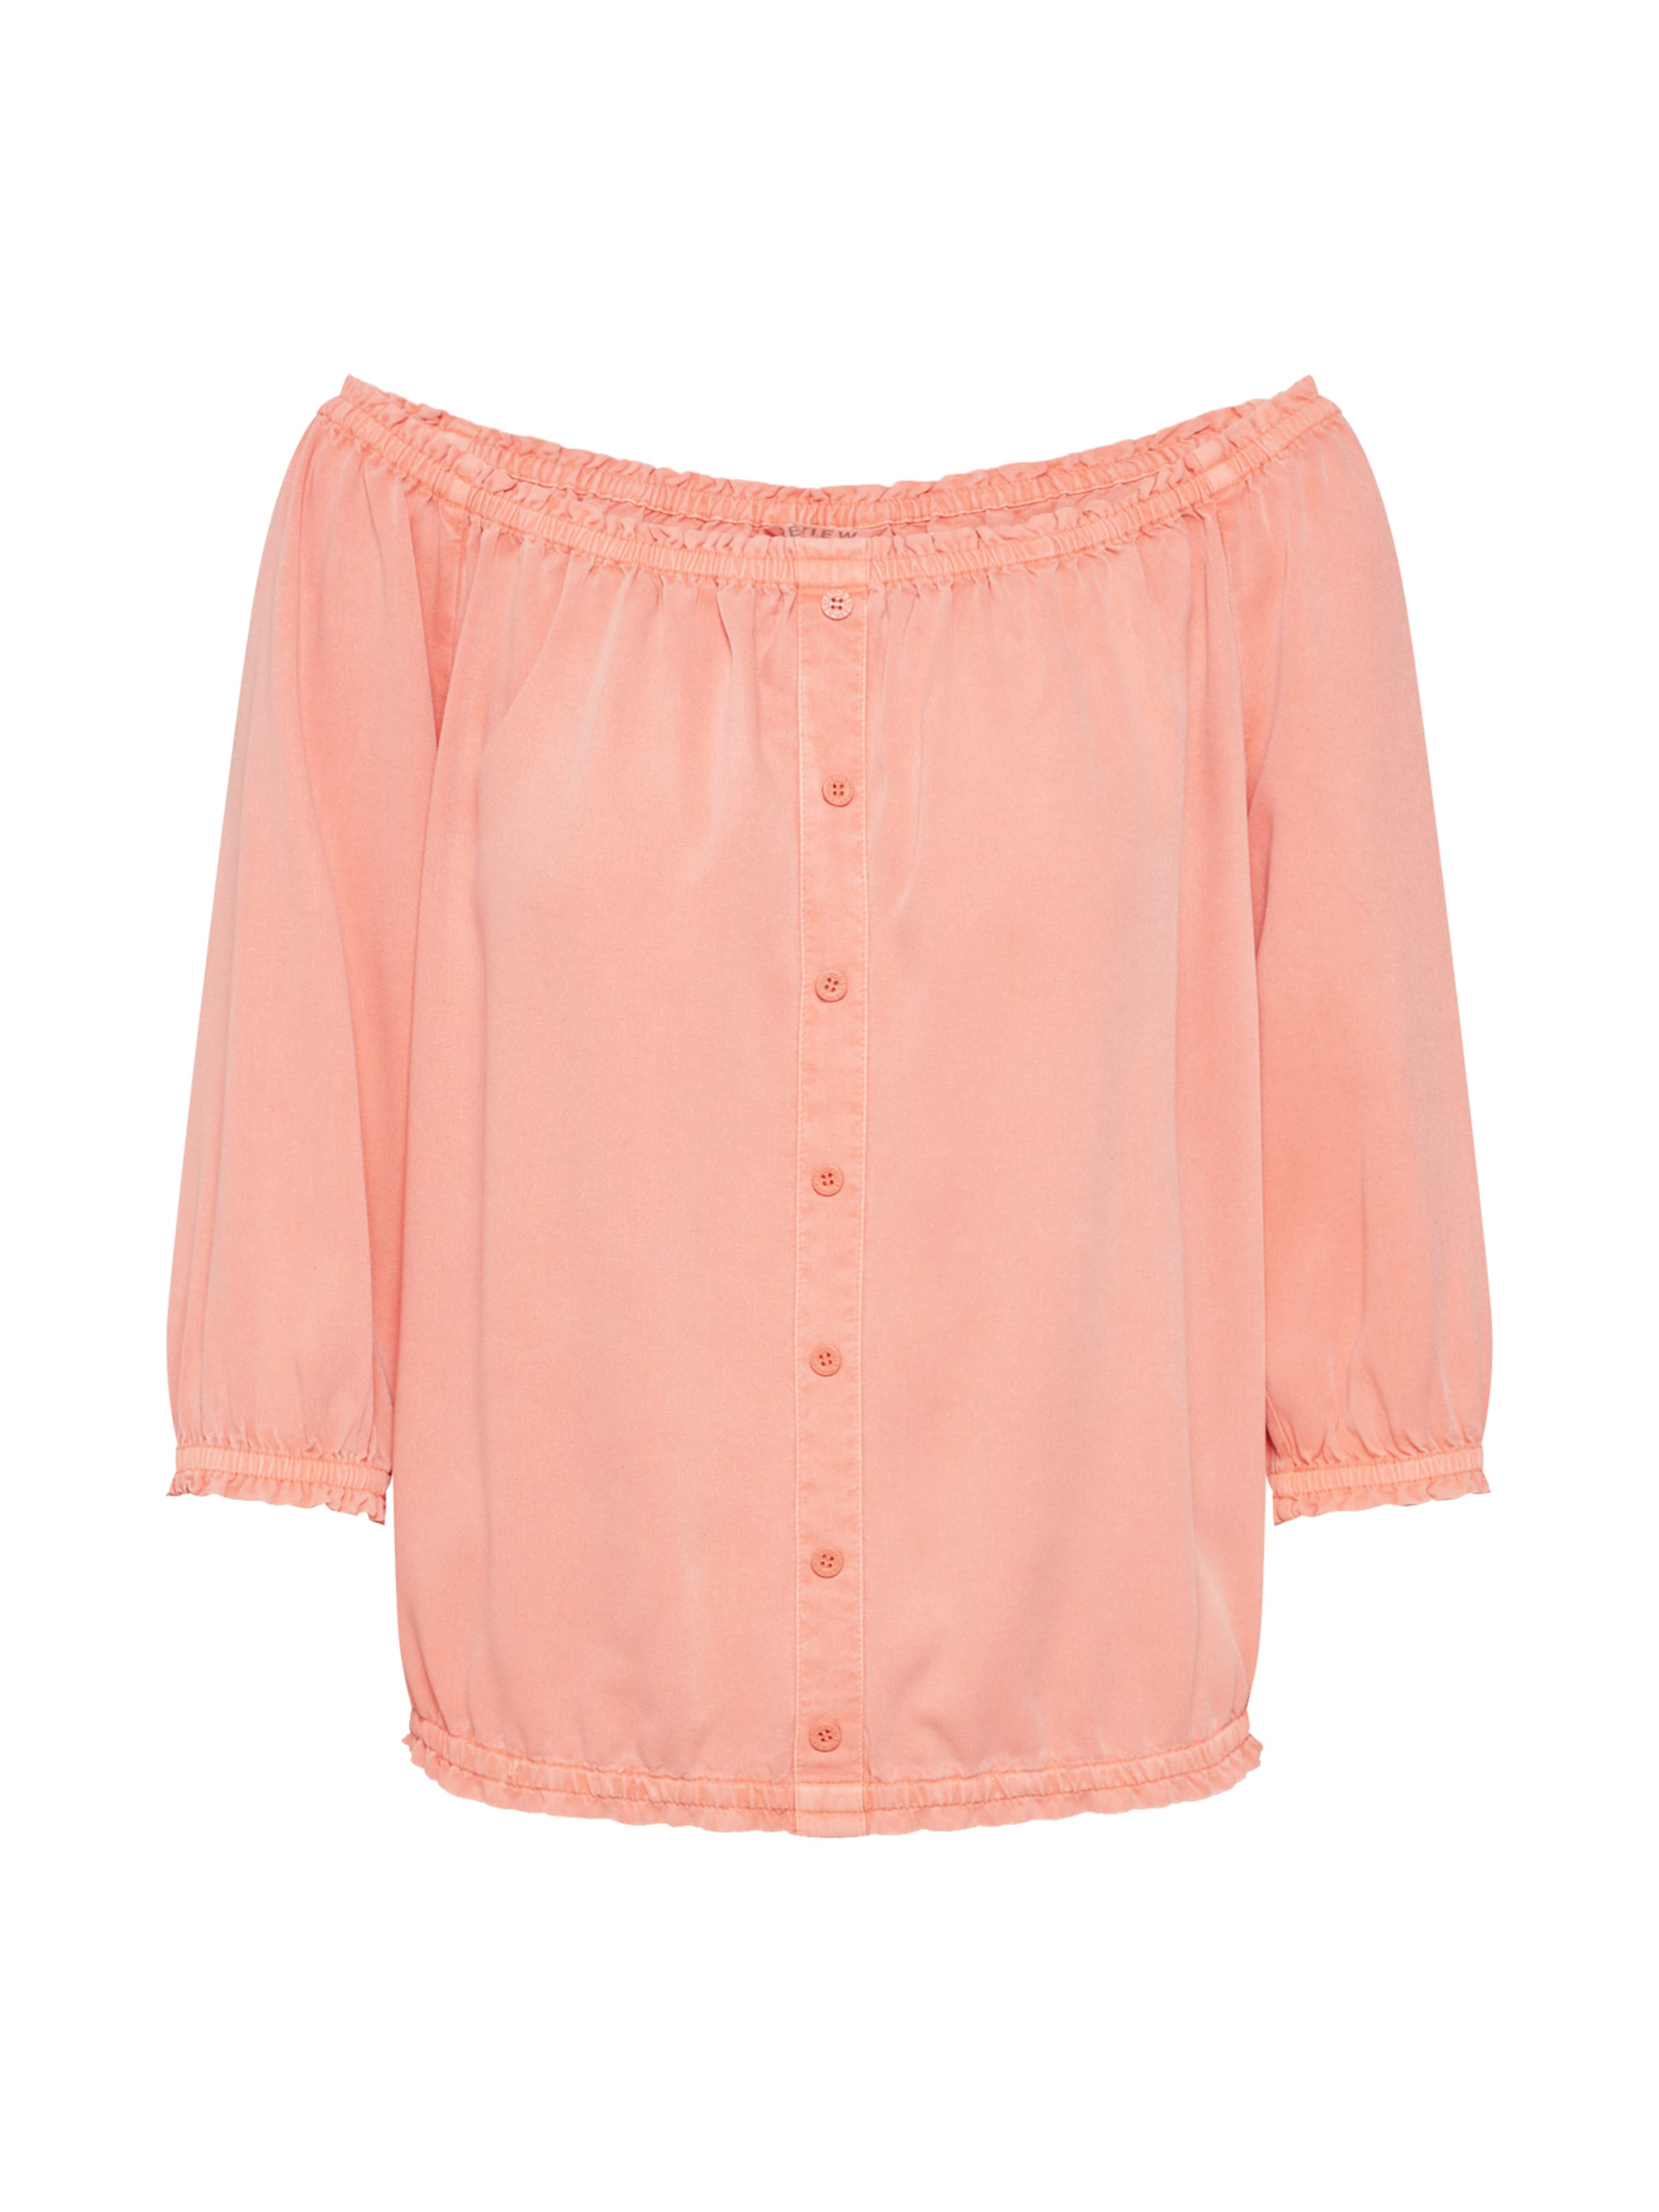 Bluse Bluse Apricot Apricot Review Review Bluse 'carmen' In 'carmen' In 'carmen' Review dCsthQrx